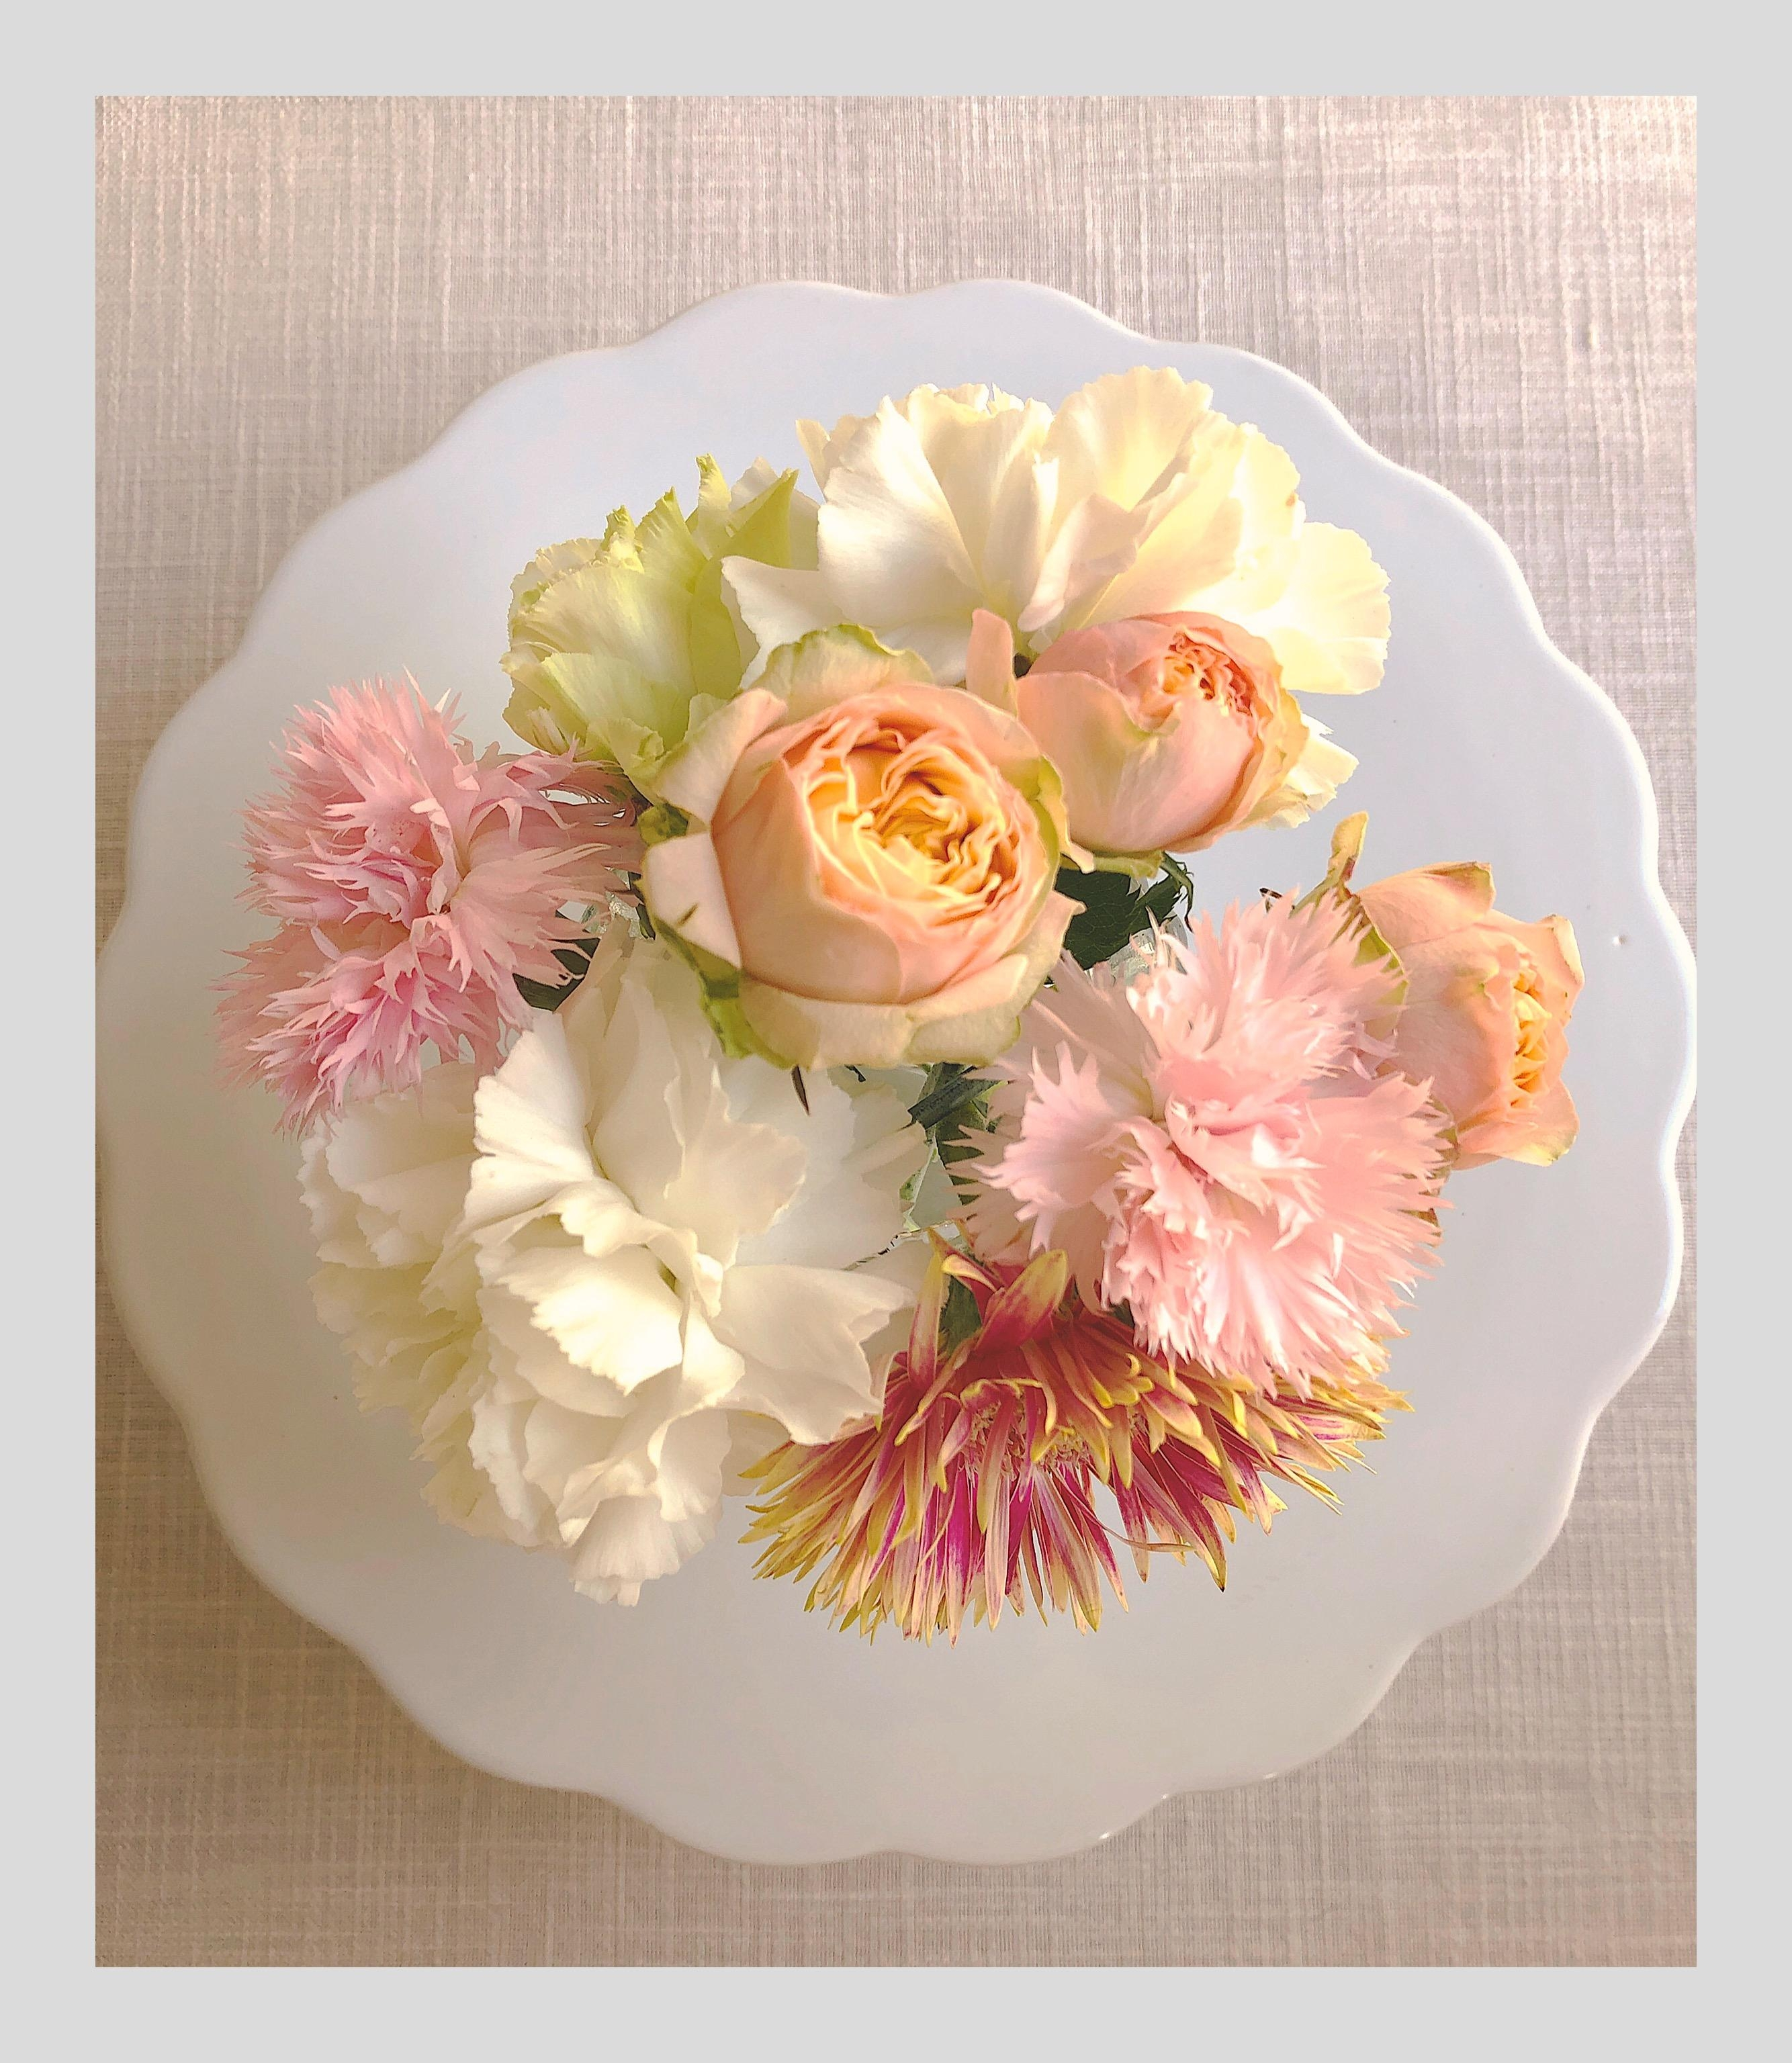 Happy #freshflowerfriday ! #Blumen #flowers #blumendeko #pastell